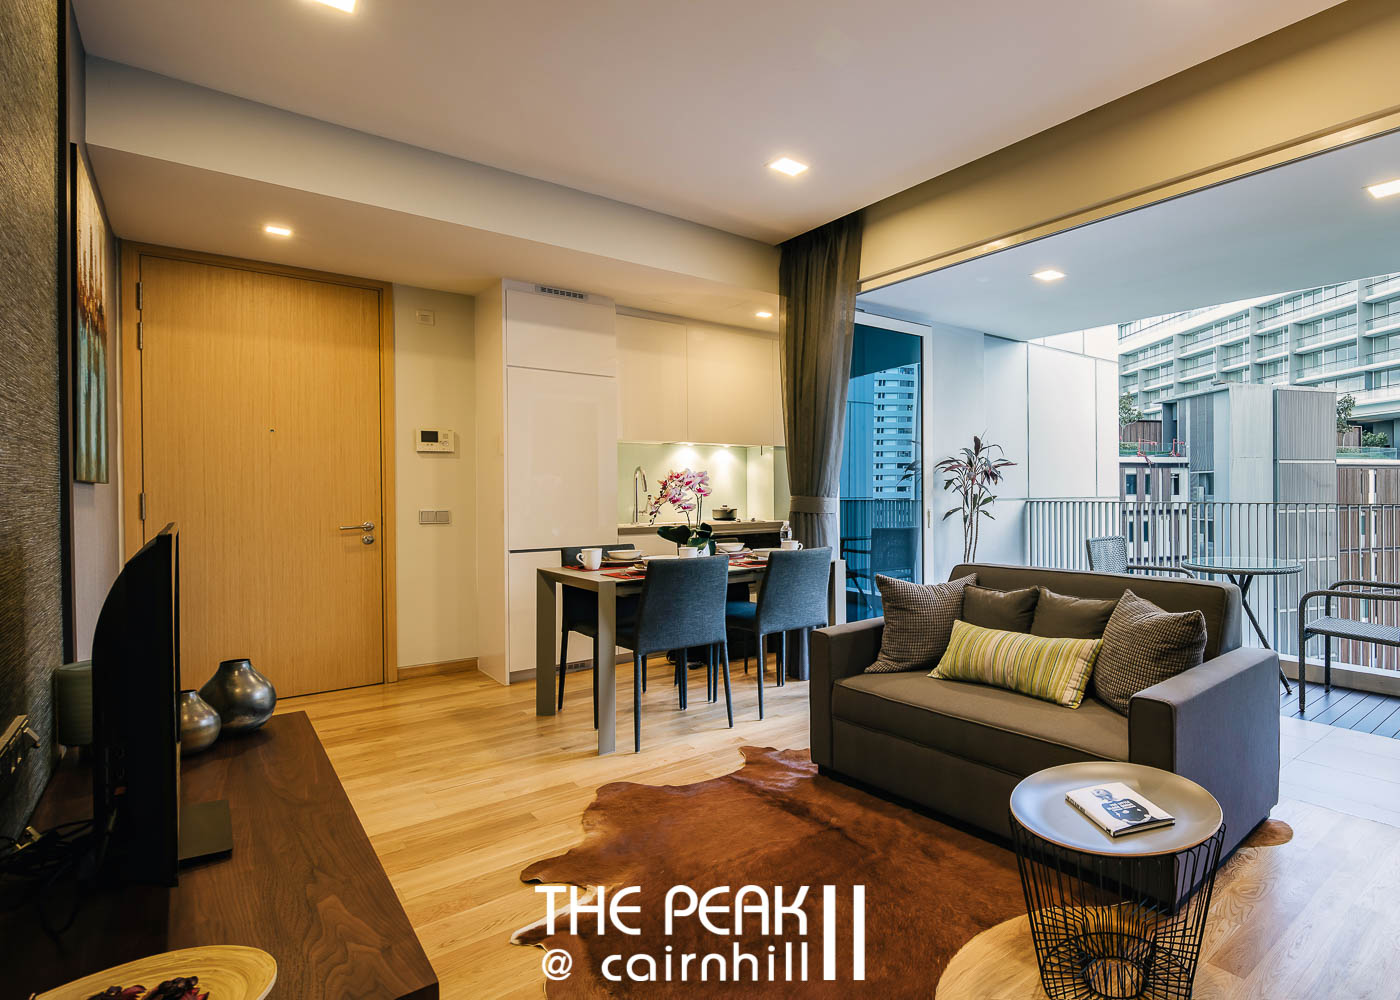 The Peak @ Cairnhill II